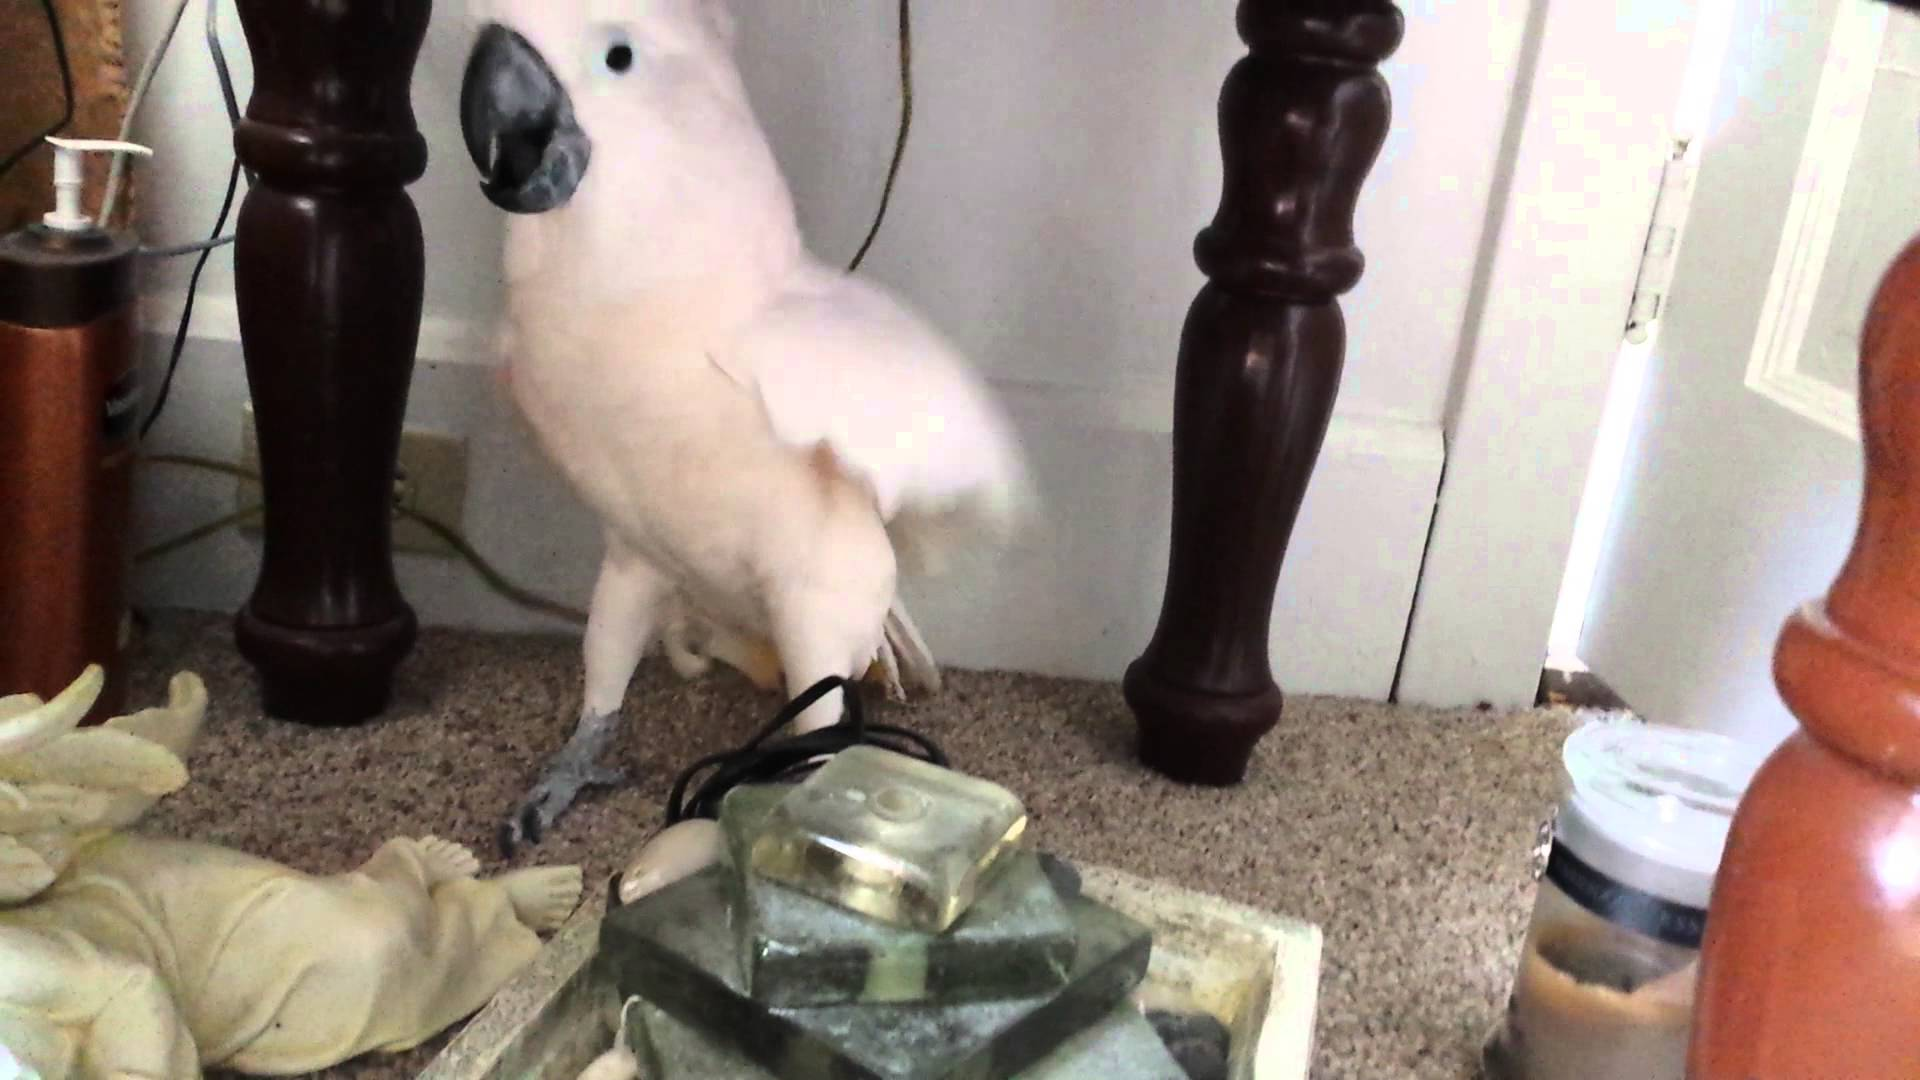 A parrot was informed he is going to the vet, his reaction was hilarious!